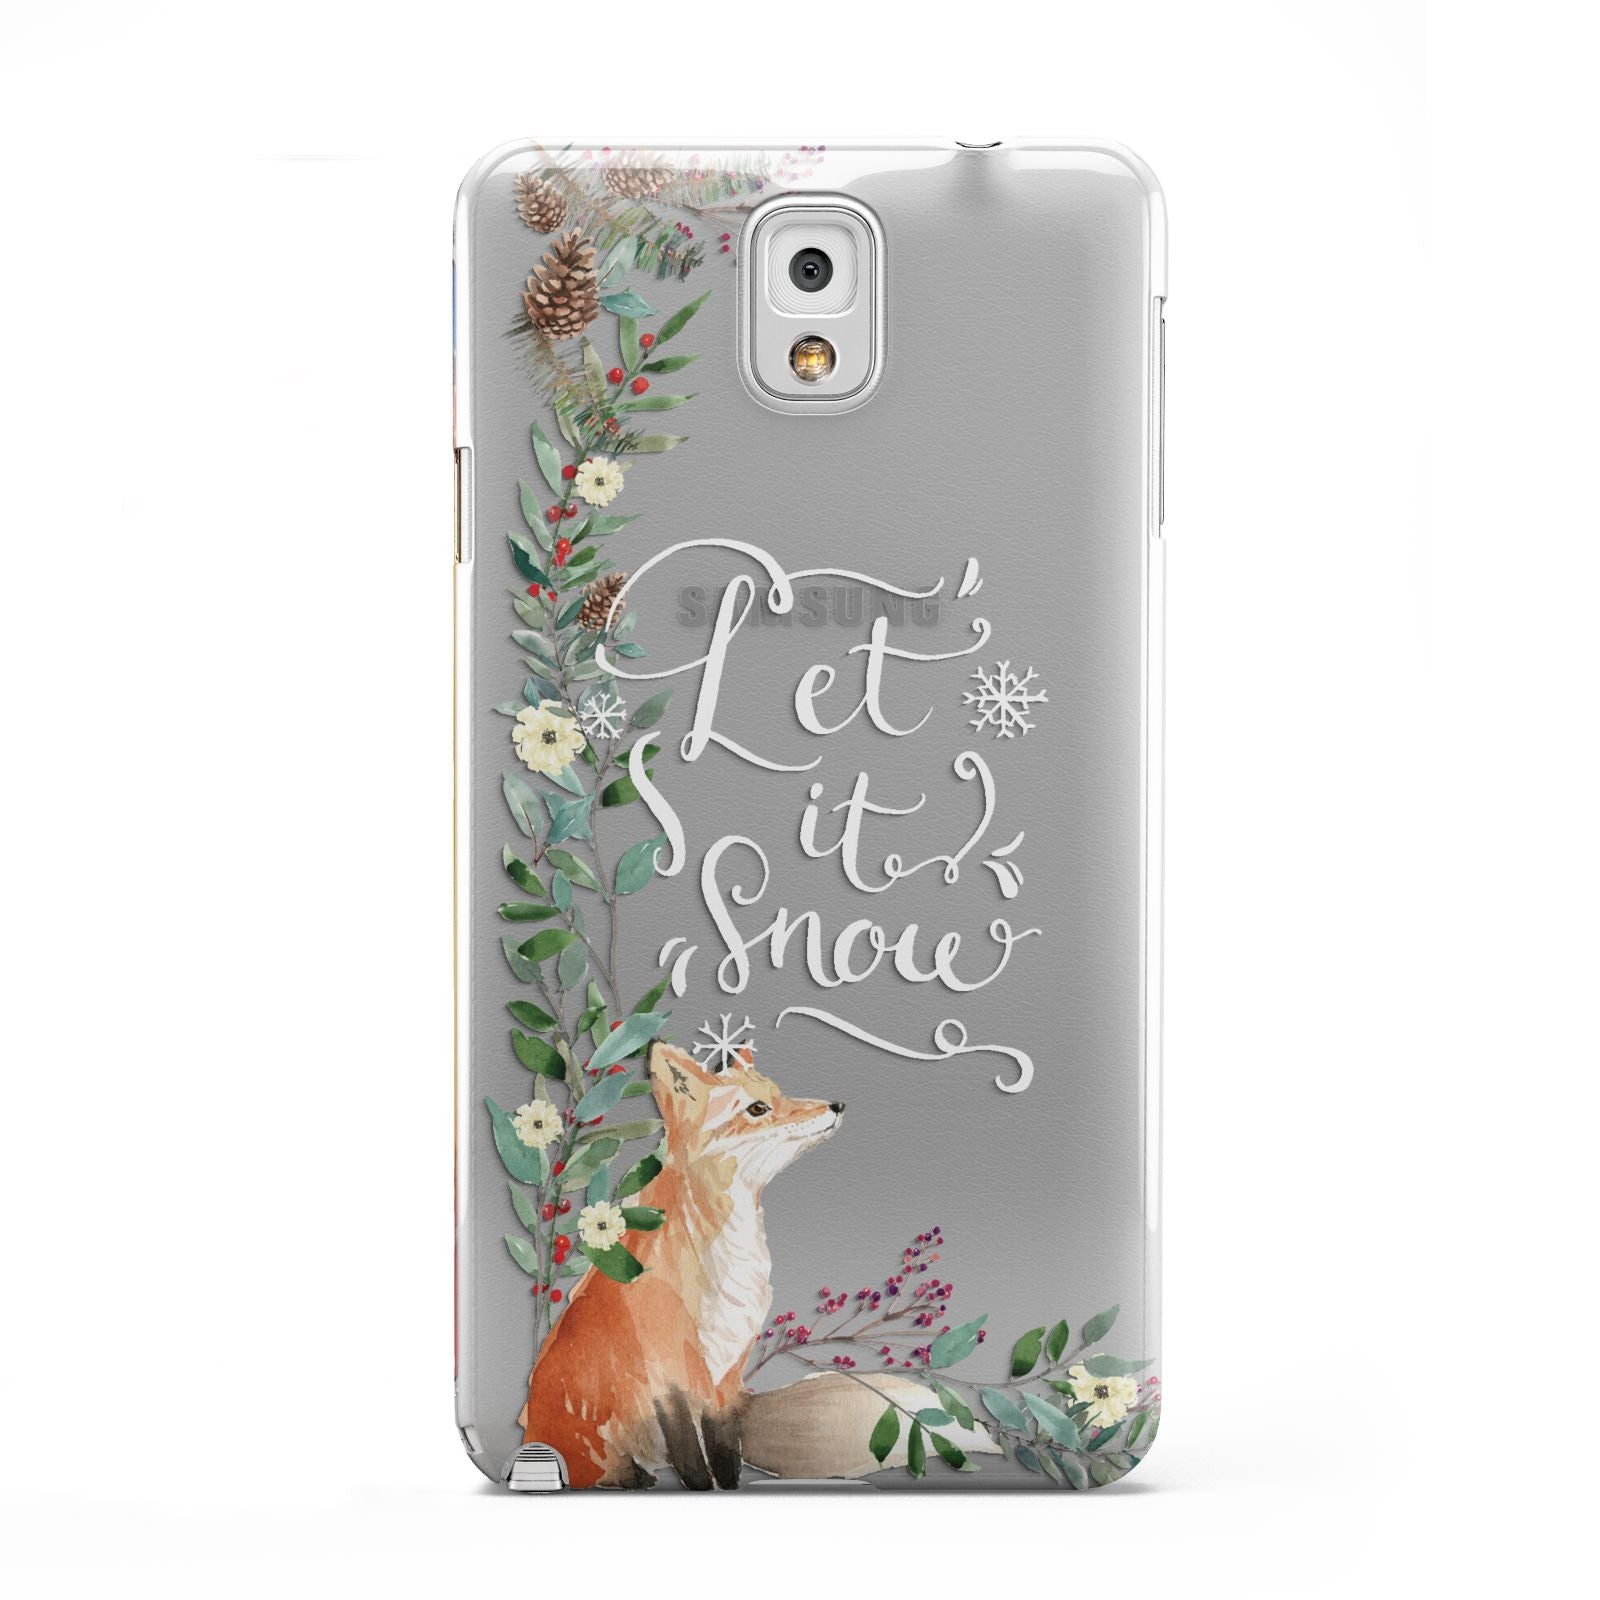 Let It Snow Christmas Samsung Galaxy Note 3 Case